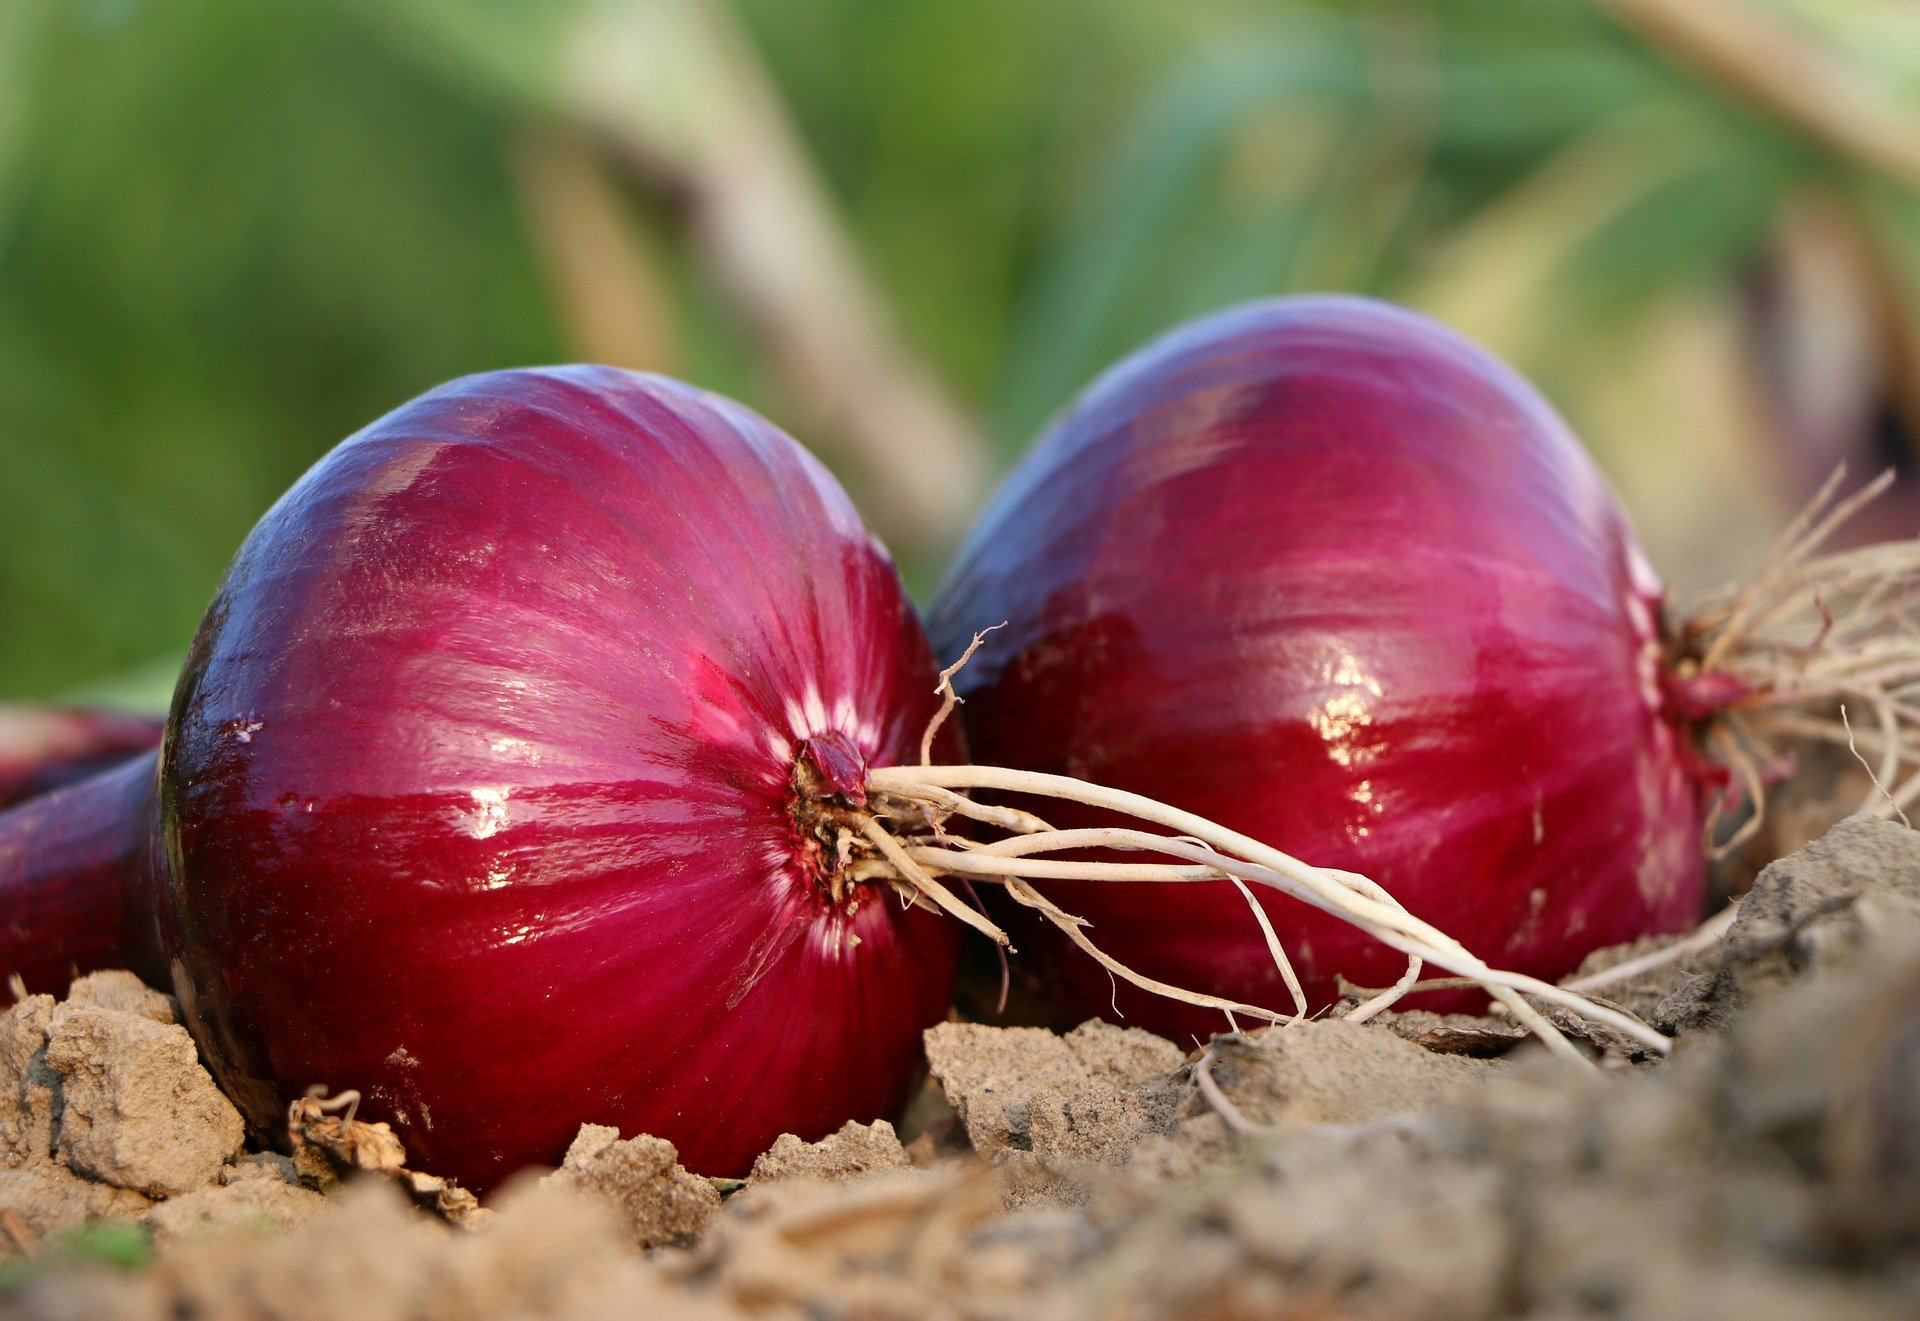 onion for hair problem solution